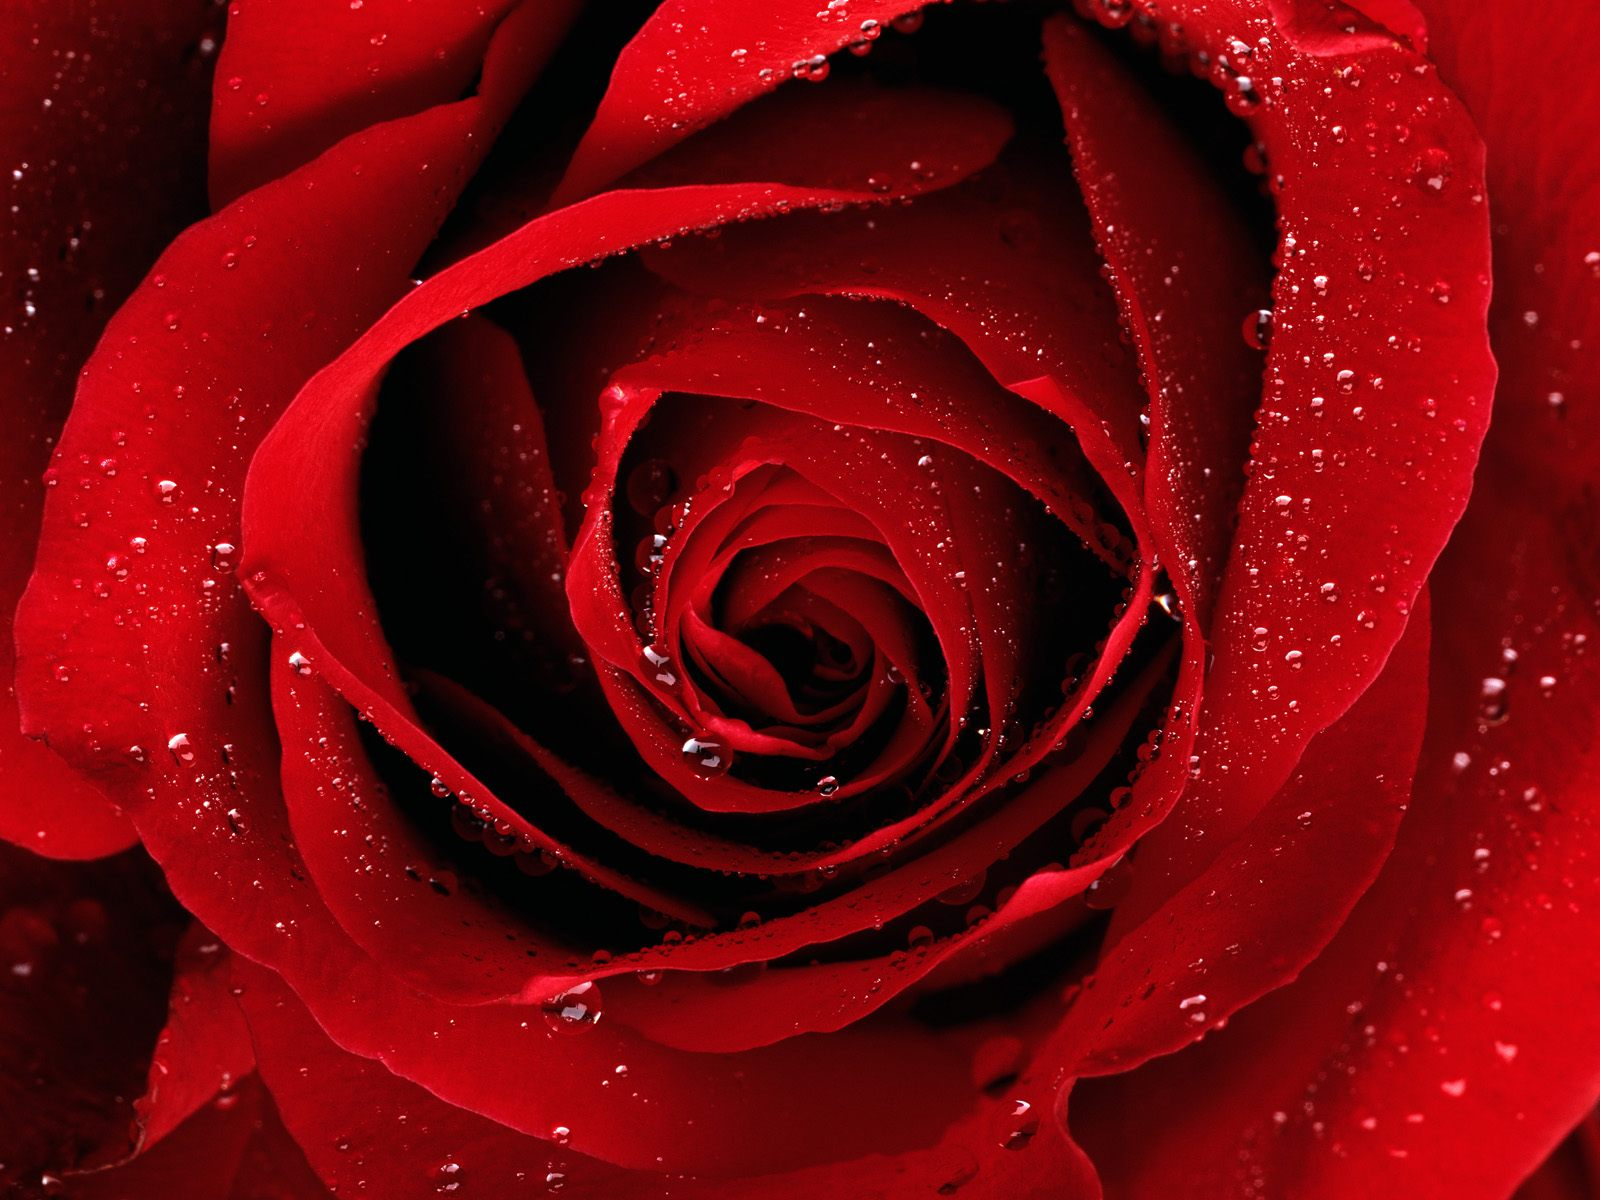 http://1.bp.blogspot.com/-3vCMhreYzes/TuwlHtahZaI/AAAAAAAAAgo/Jj-LAoWRMpM/s1600/flowers-wallpapers-a-red-rose-for-you.jpg